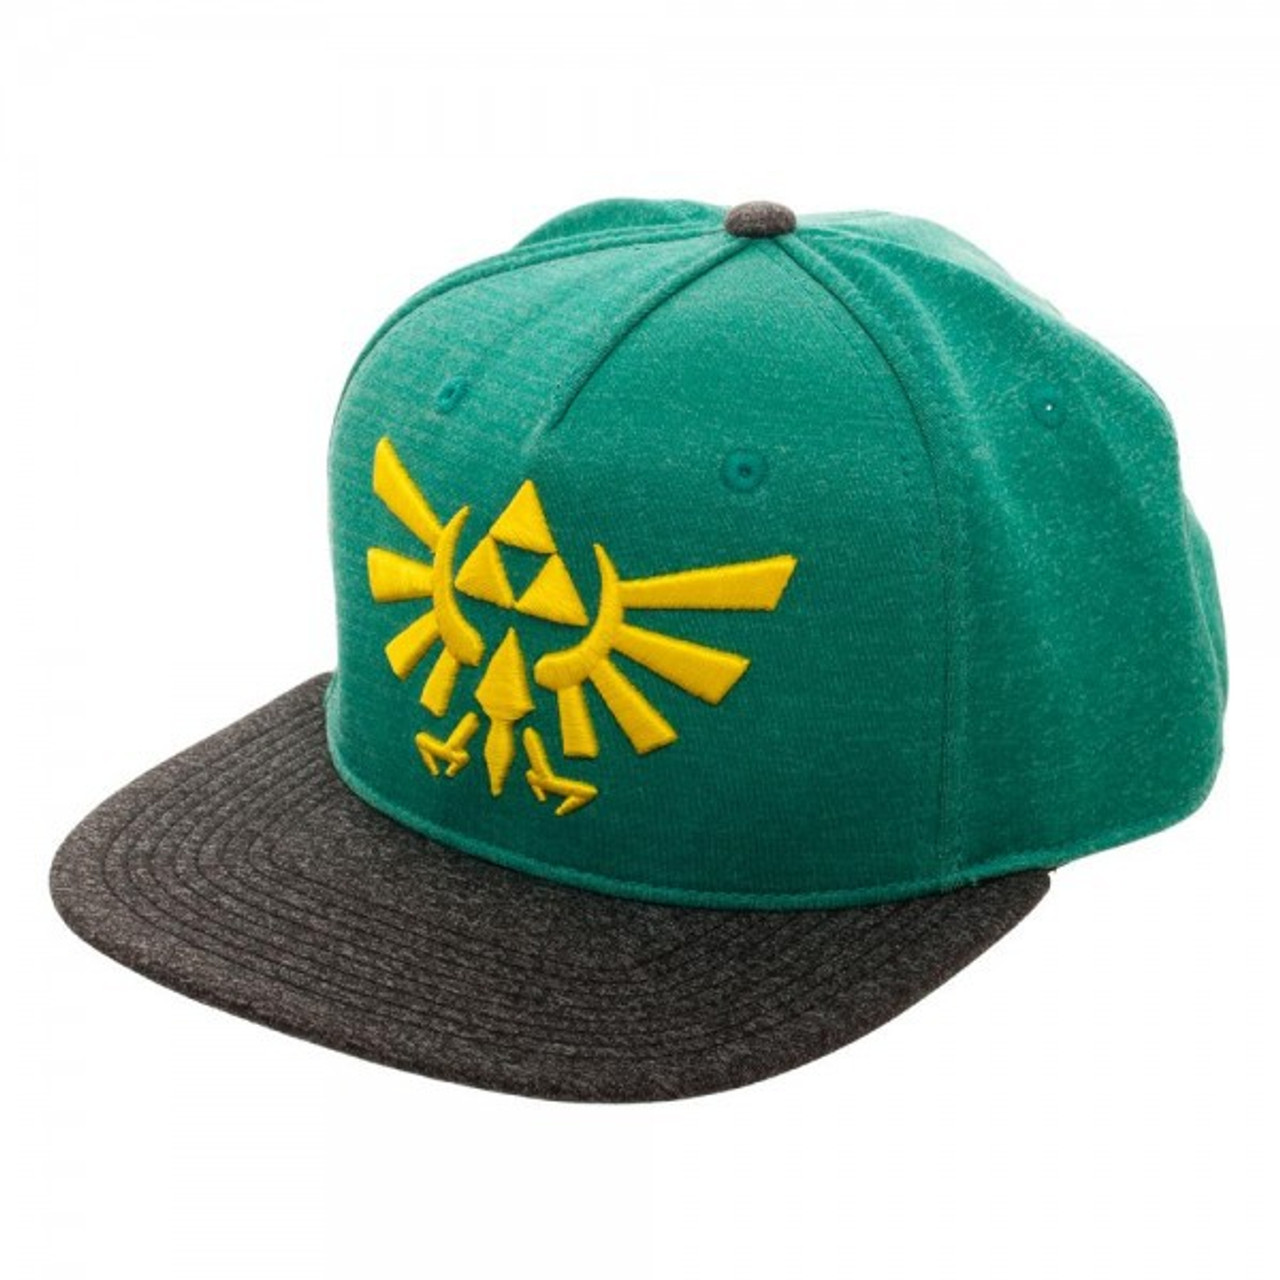 promo code ab4e8 05e77 The Legend of Zelda Breath of the Wild Zelda Embroidered Polyester Snapback  Cap Apparel Bioworld - ToyWiz